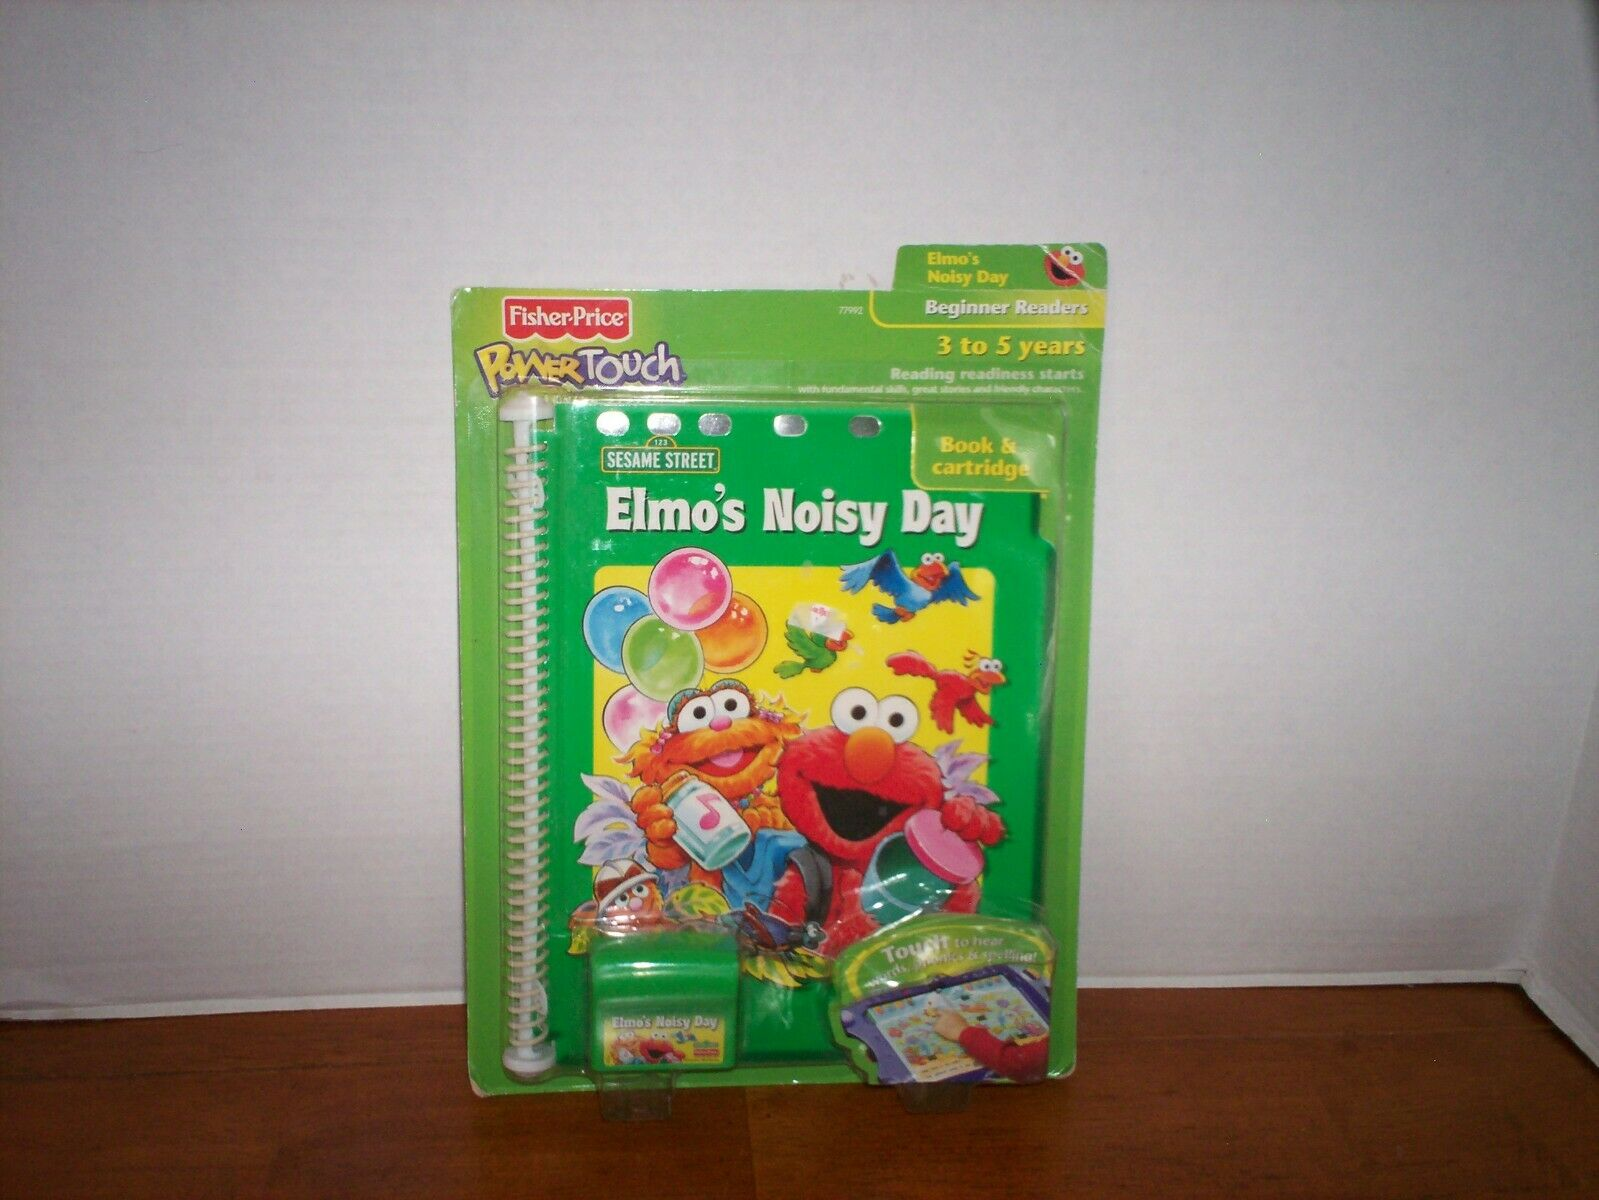 Fisher Price Elmo's Noisy Day Power Touch Book and Cartrid